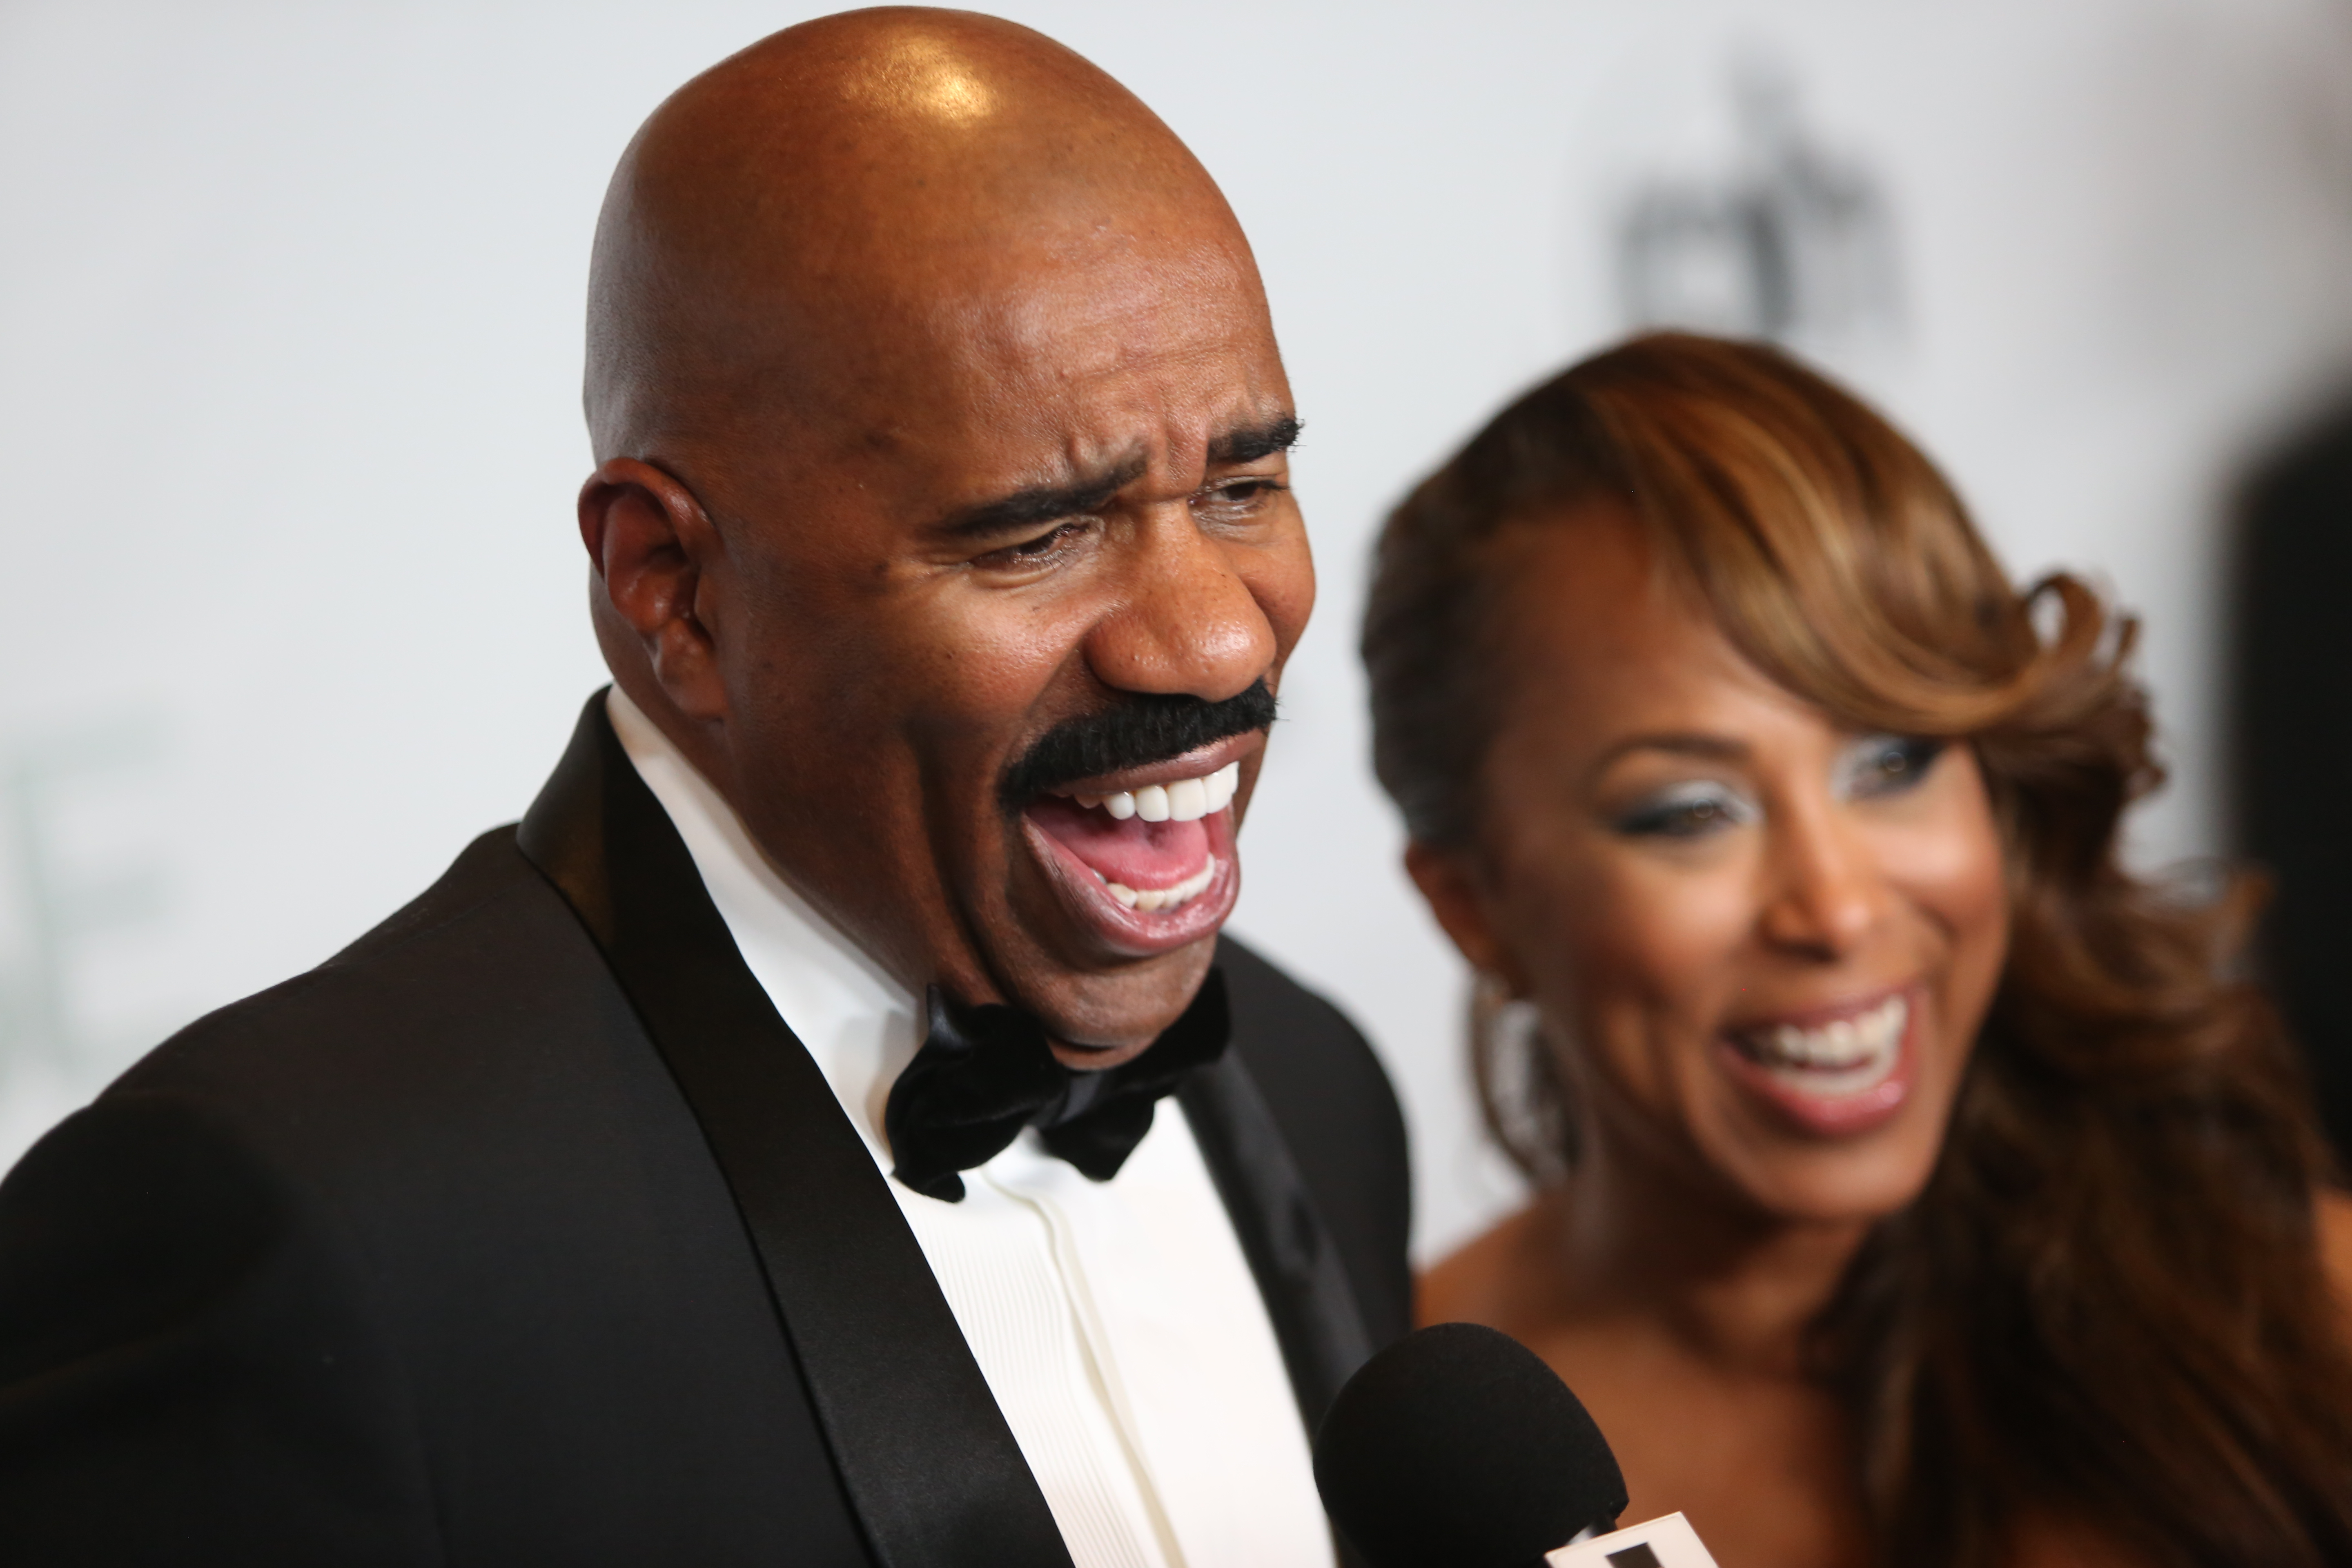 Steve Harvey talks with a journalist during the The 64th Annual Miss Universe Pageant Arrivals on Dec. 20, 2015 in Las Vegas.